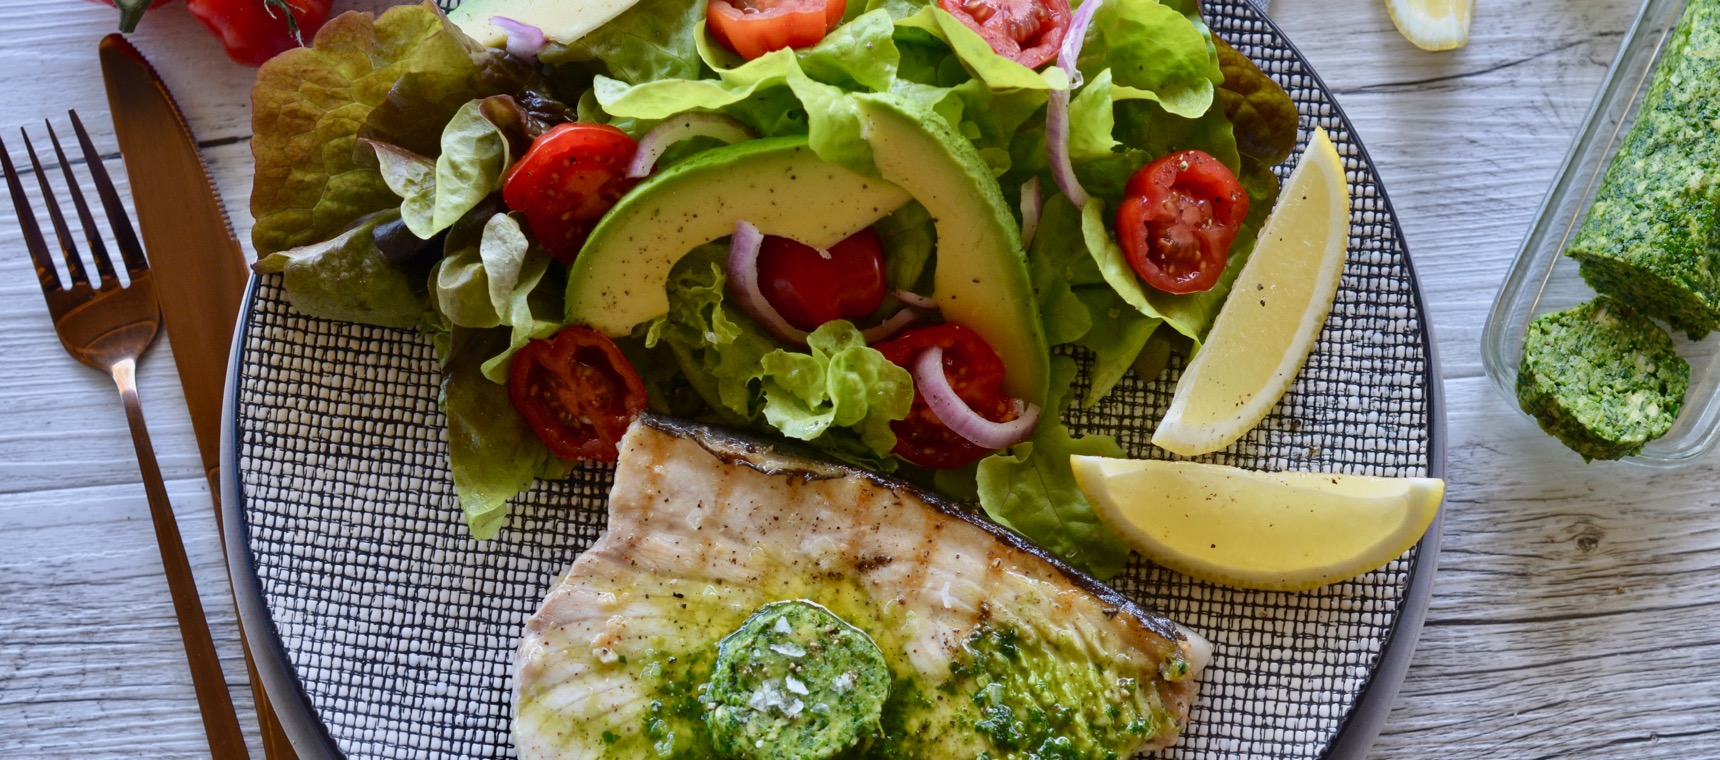 Swordfish with Garlic and Herb Butter